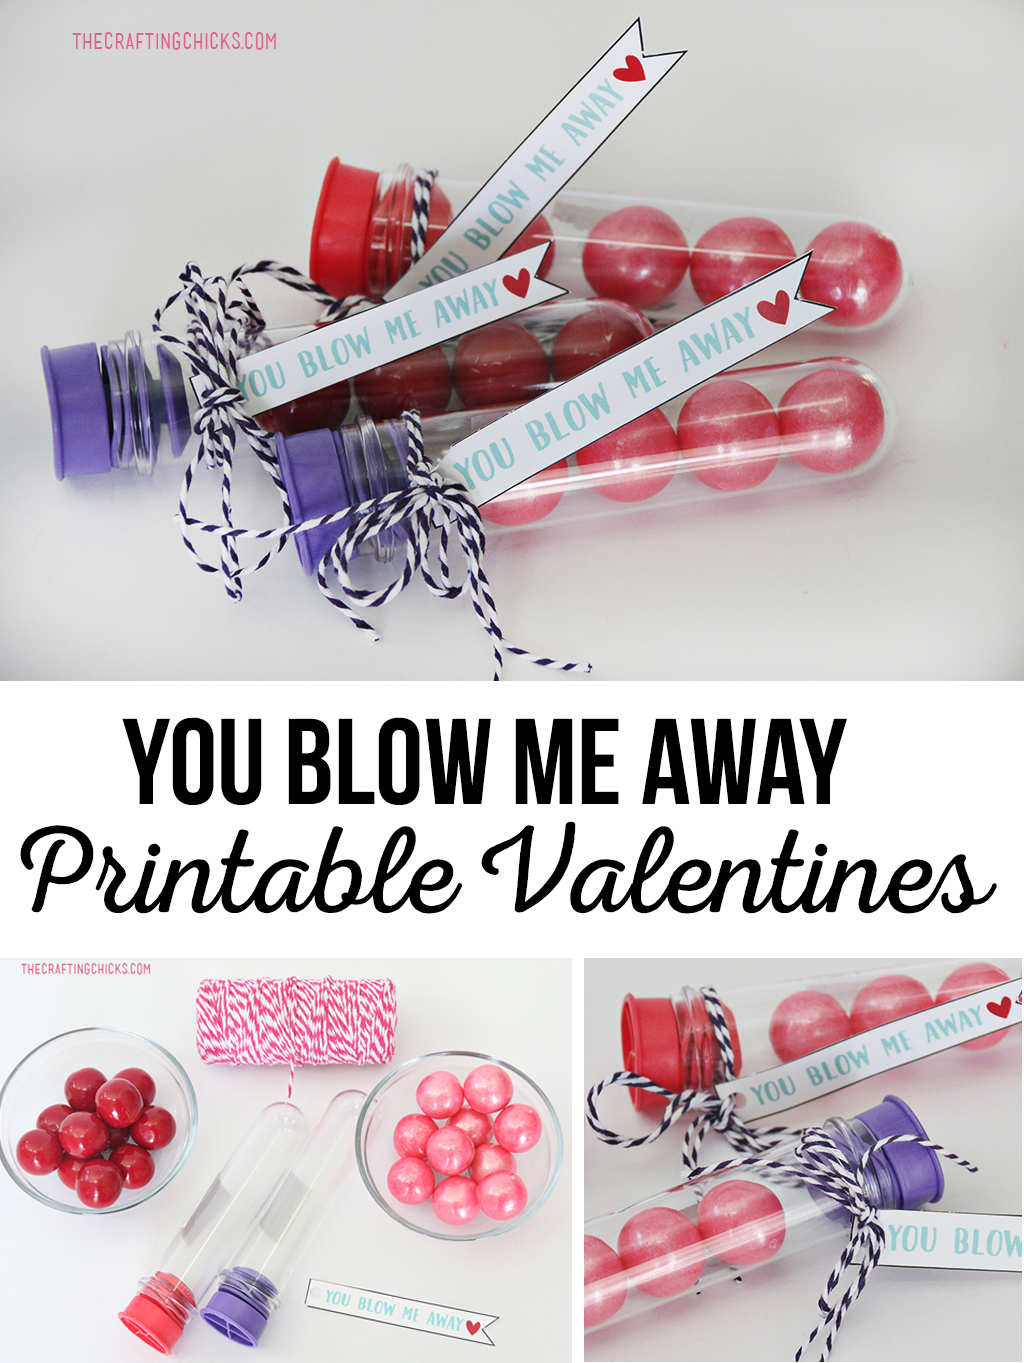 photograph regarding You Blow Me Away Valentine Printable titled Oneself Blow Me Absent Printable Valentine - The Writing Chicks